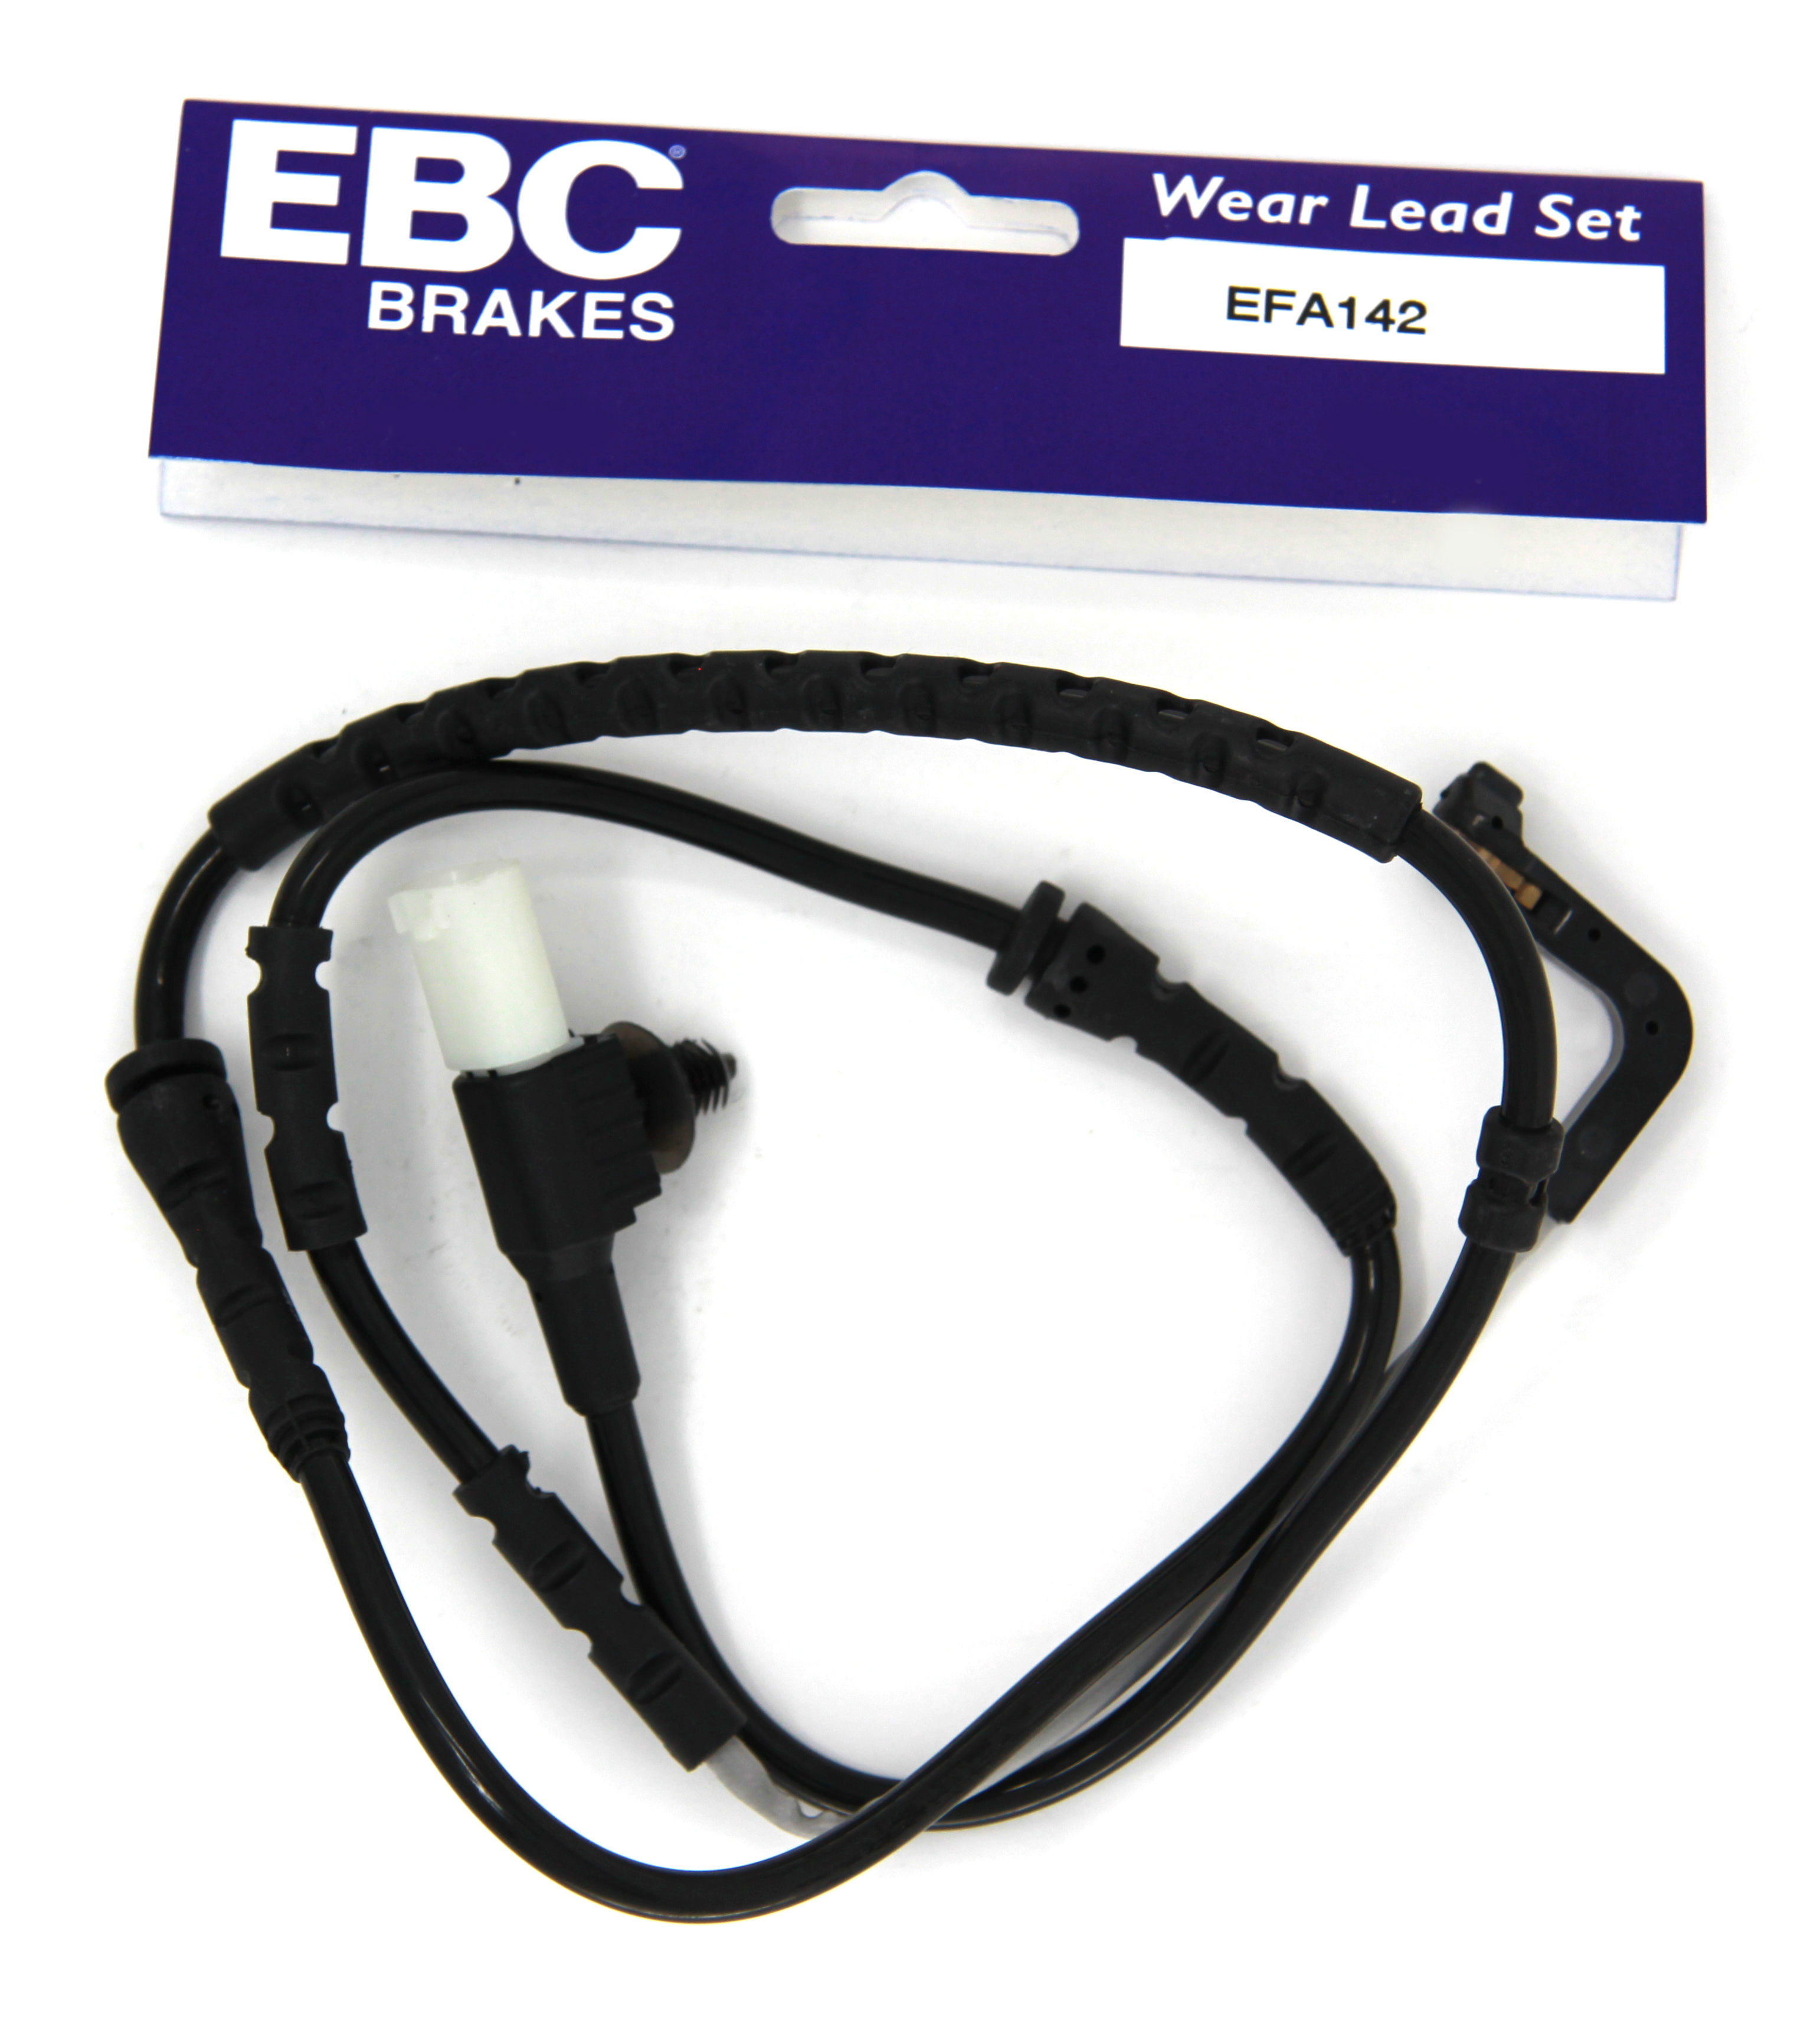 EBC Brakes EFA142 EBC Brake Wear Lead Sensor Kit